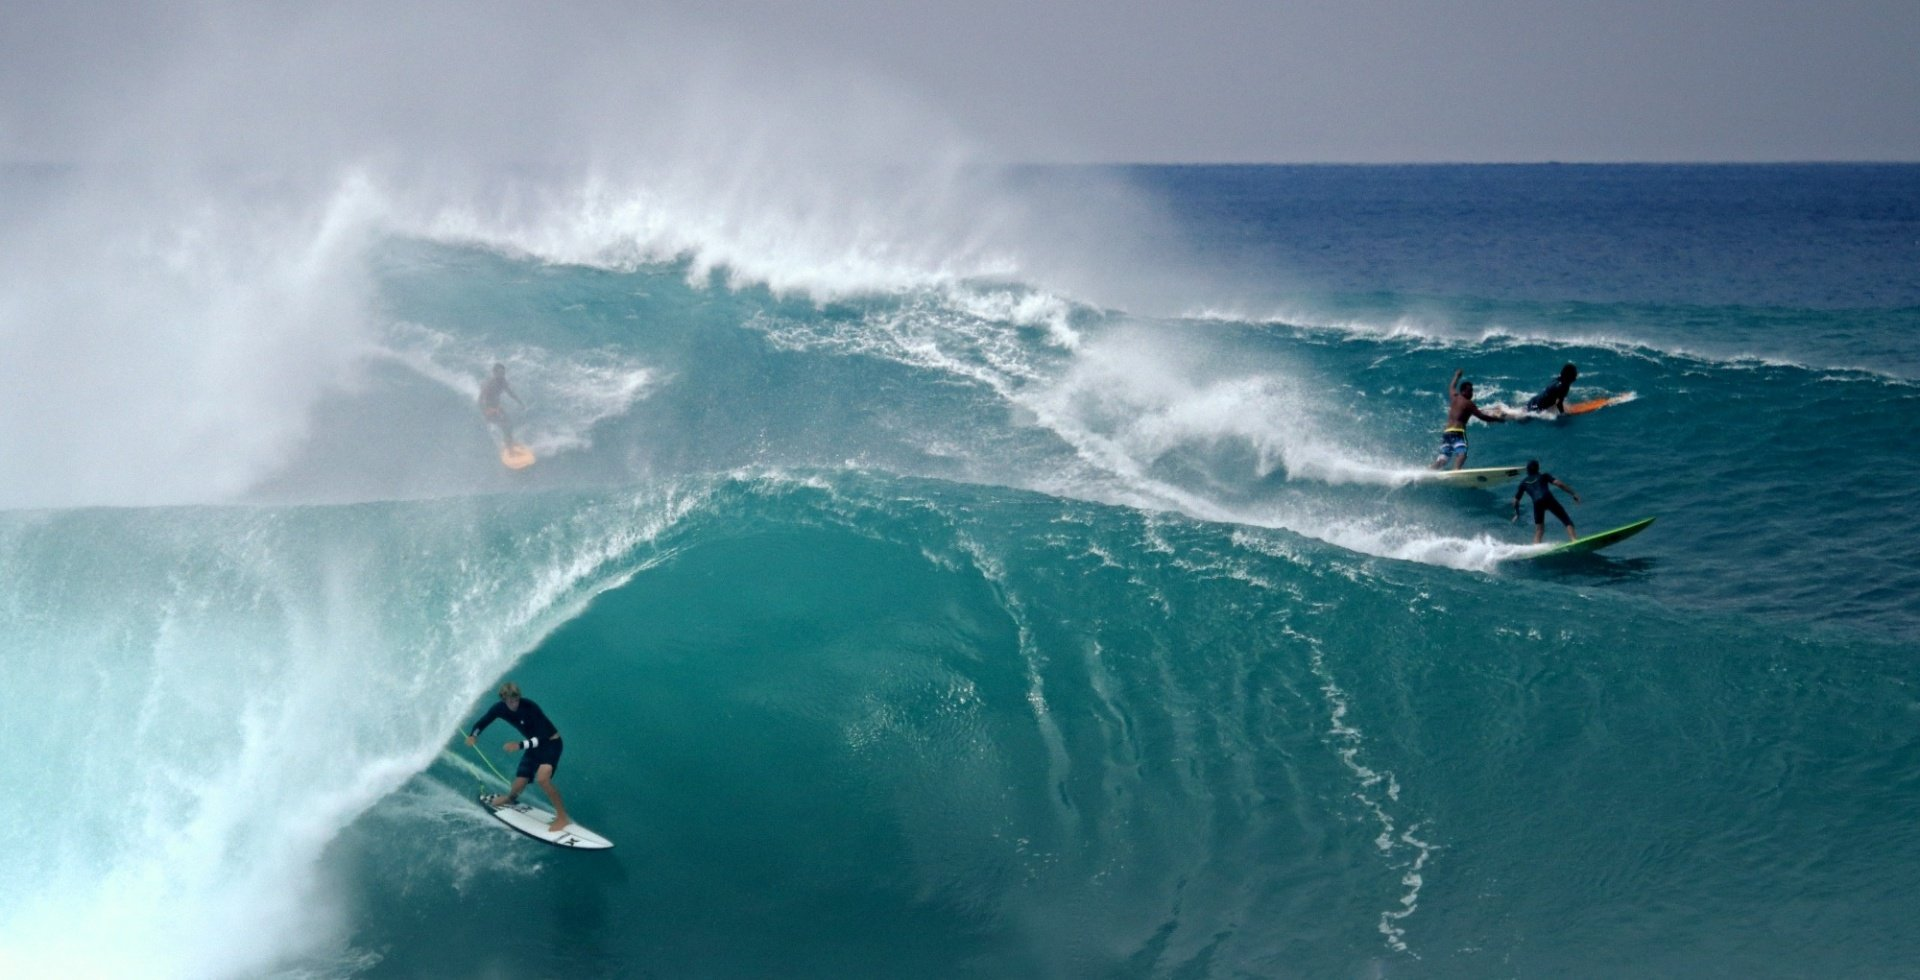 McSnowHammer's photo of Pipeline & Backdoor